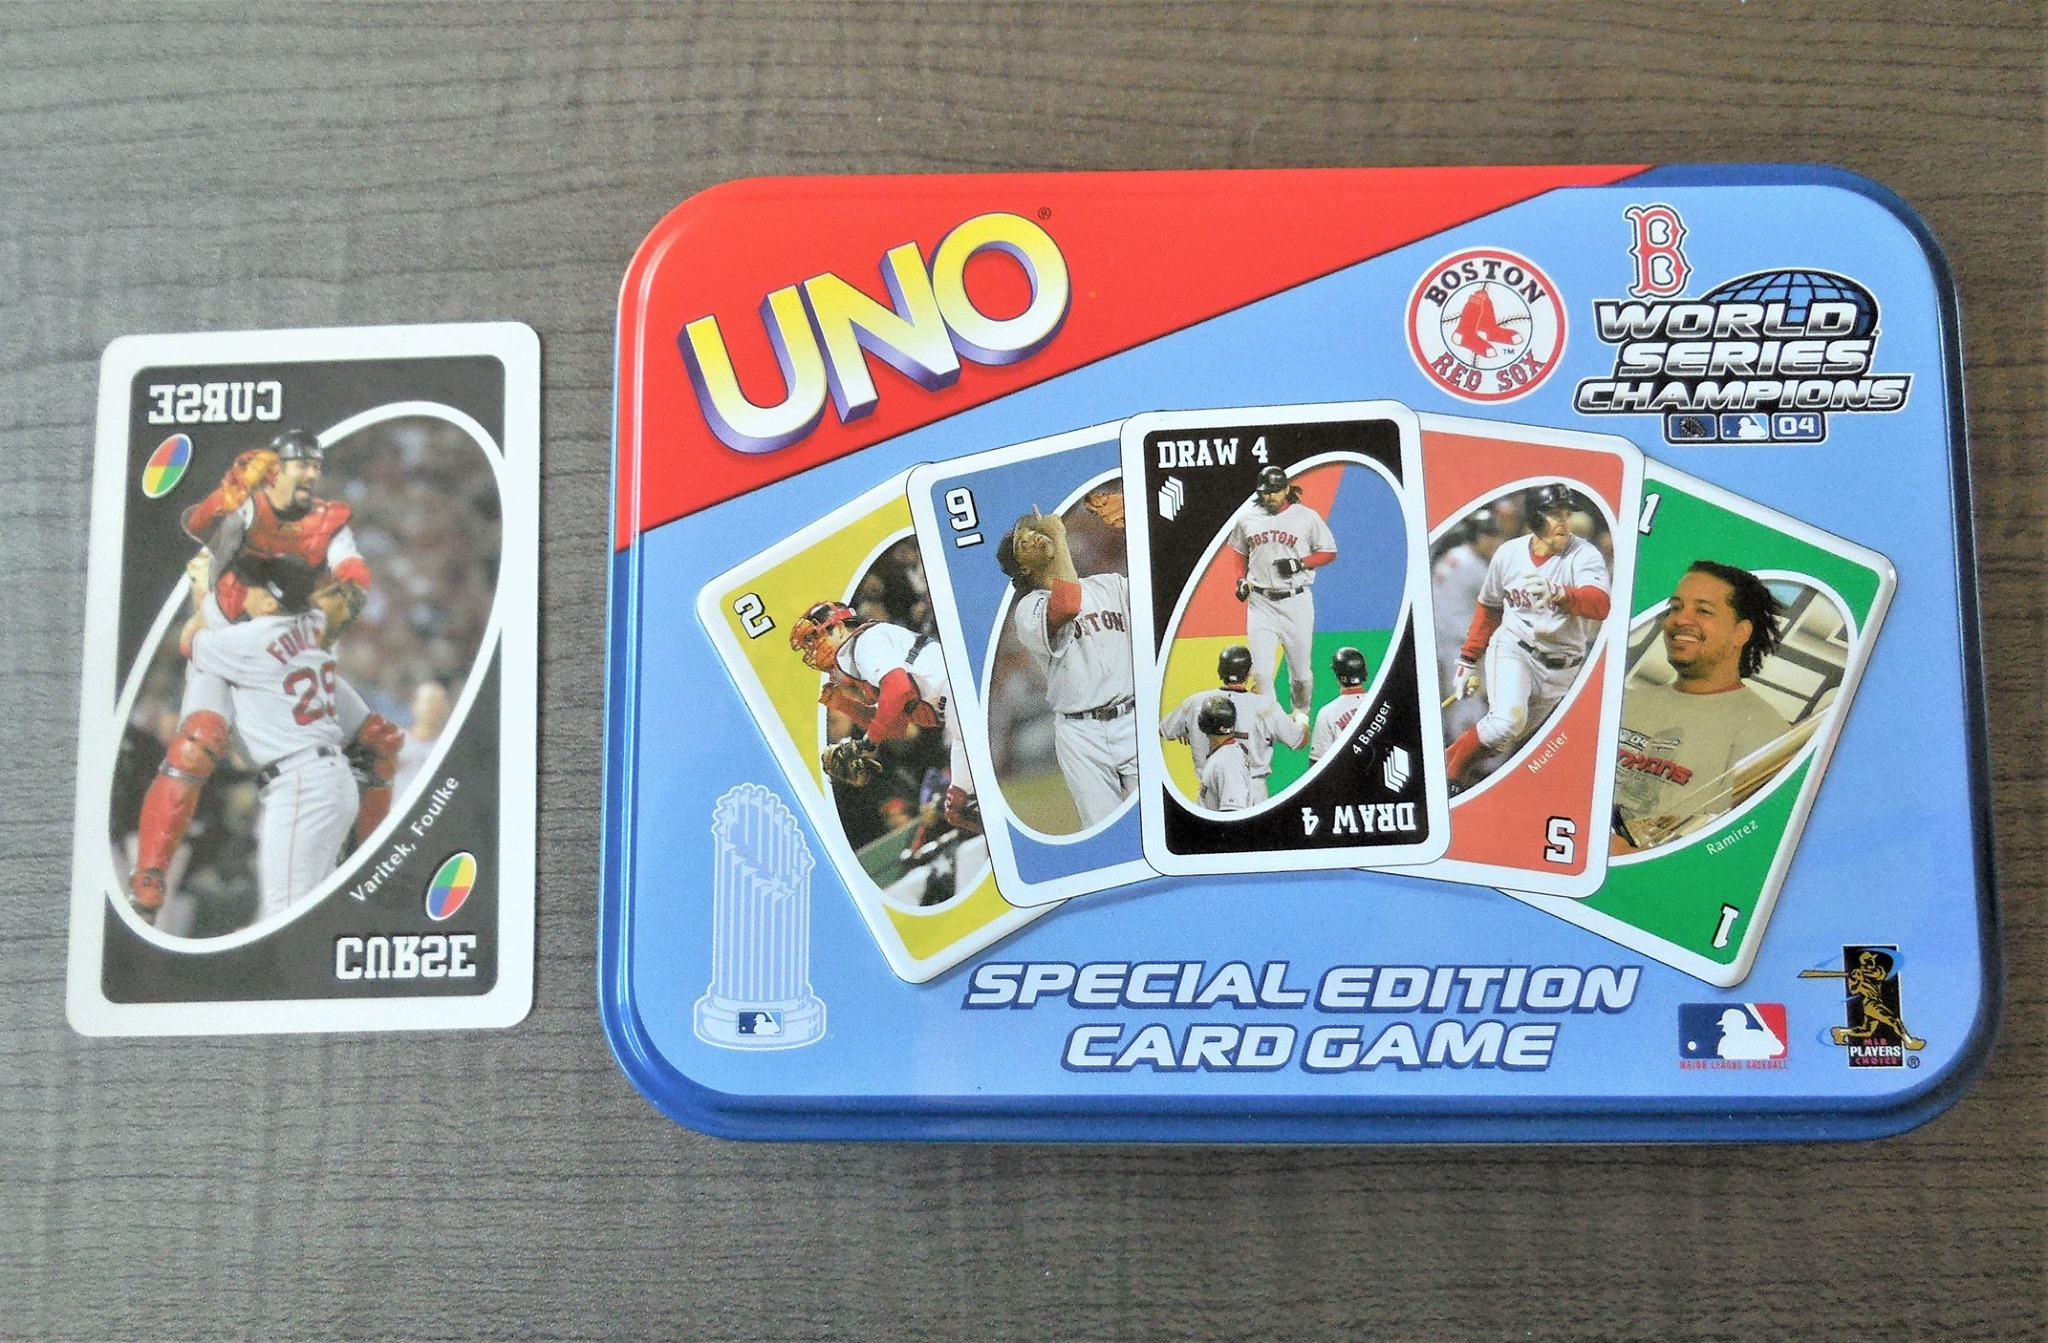 Red Sox Wold Series Champions 2004 Uno Card Game